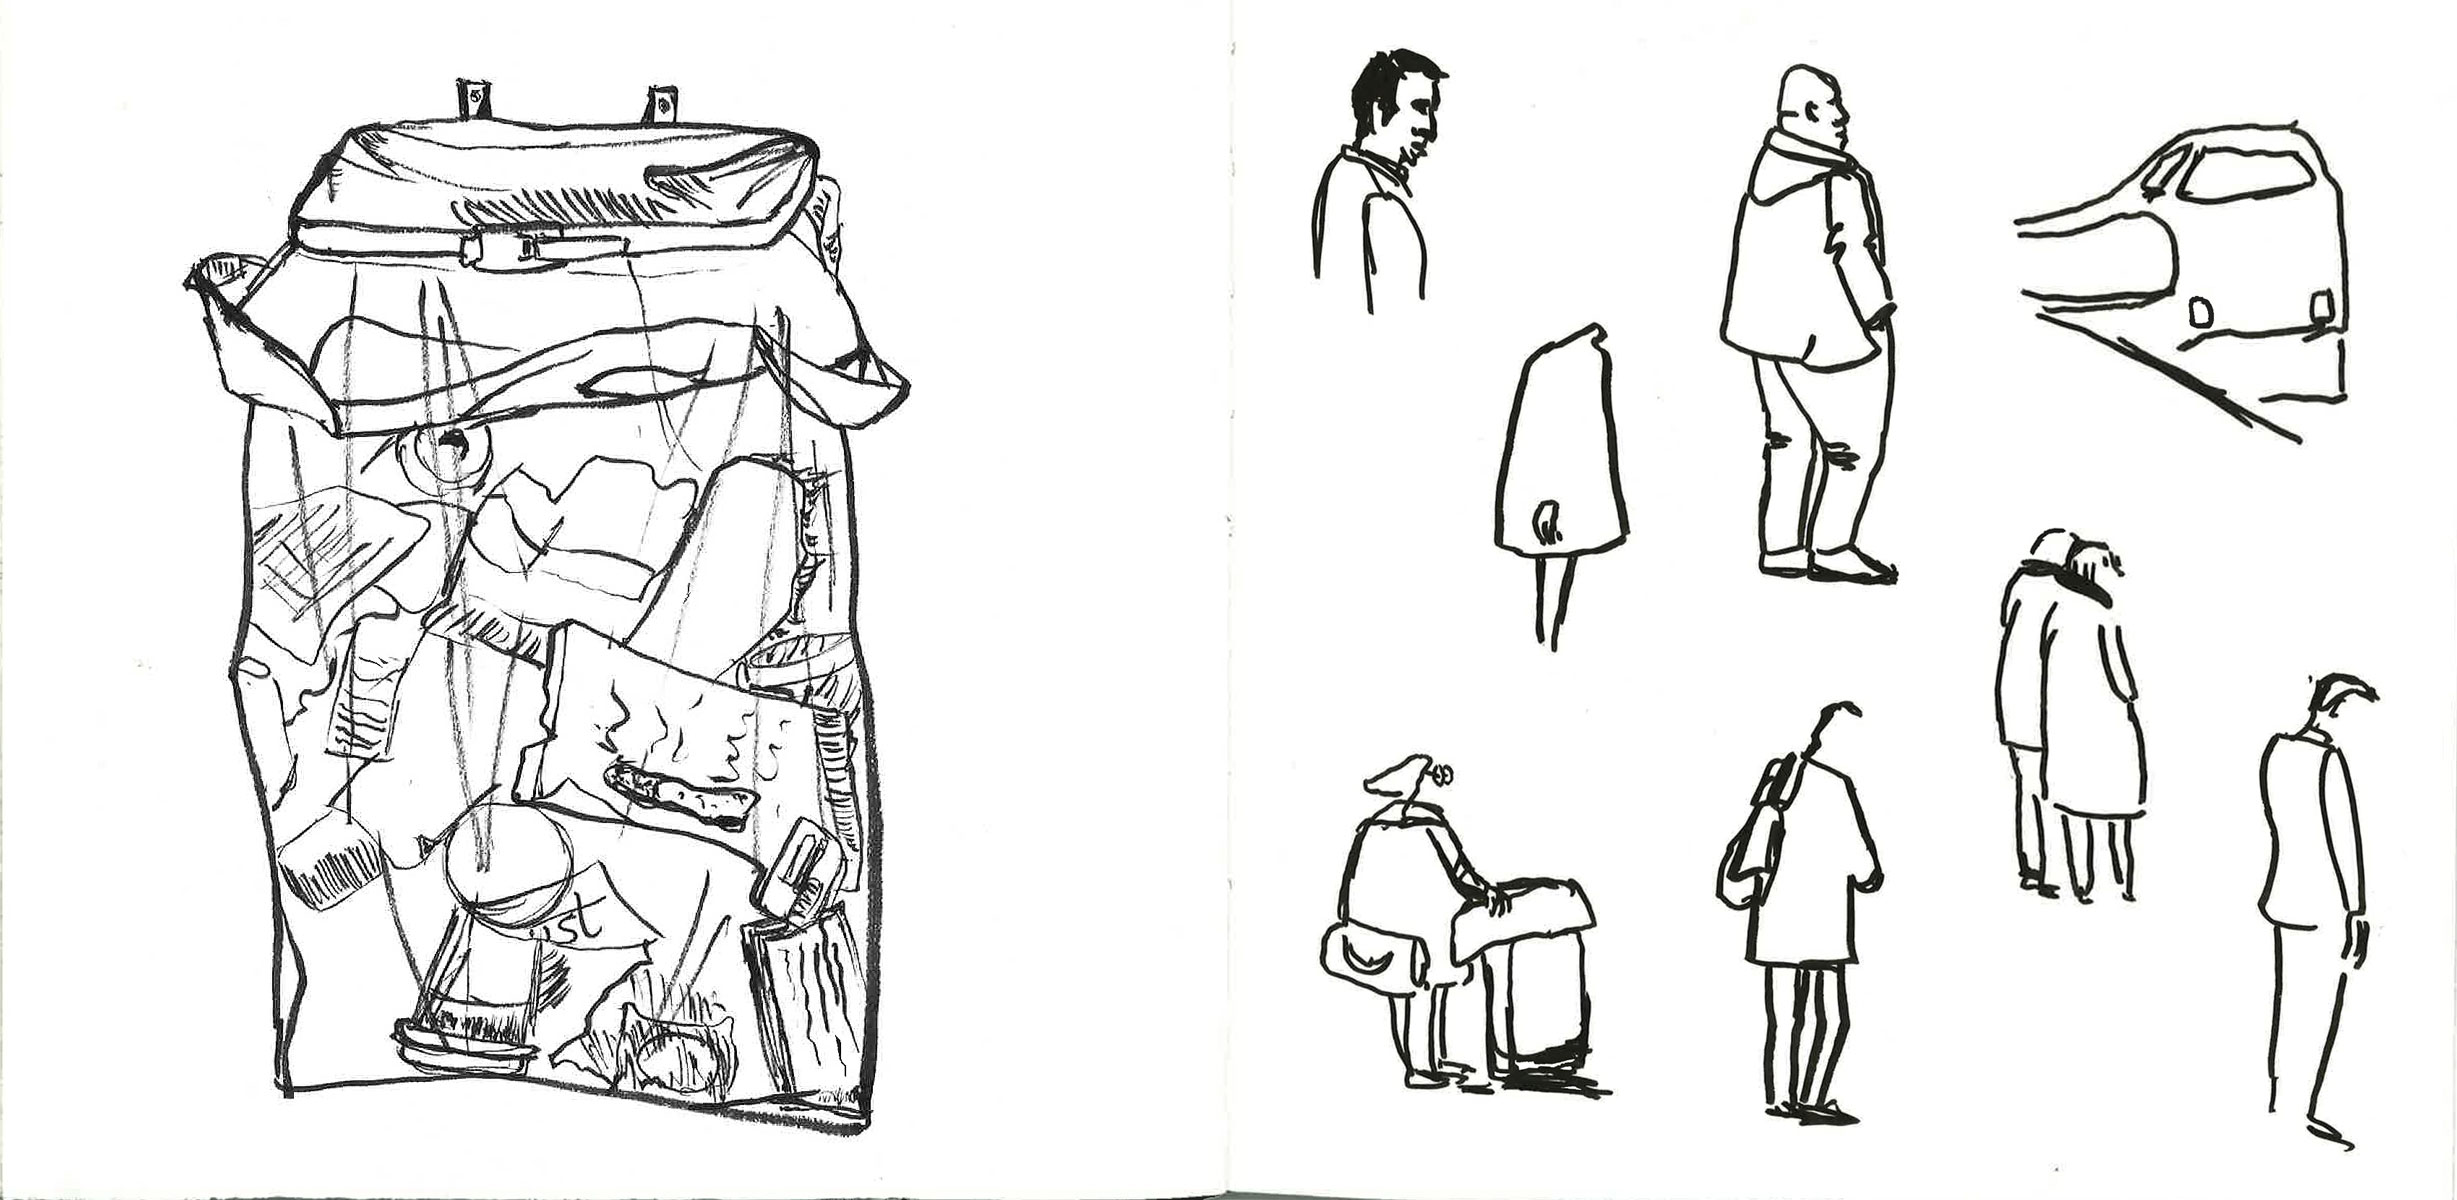 early sketch figures and trash can at deventer station sketch people walking by ellen vesters illustrator ma childrens book illustration